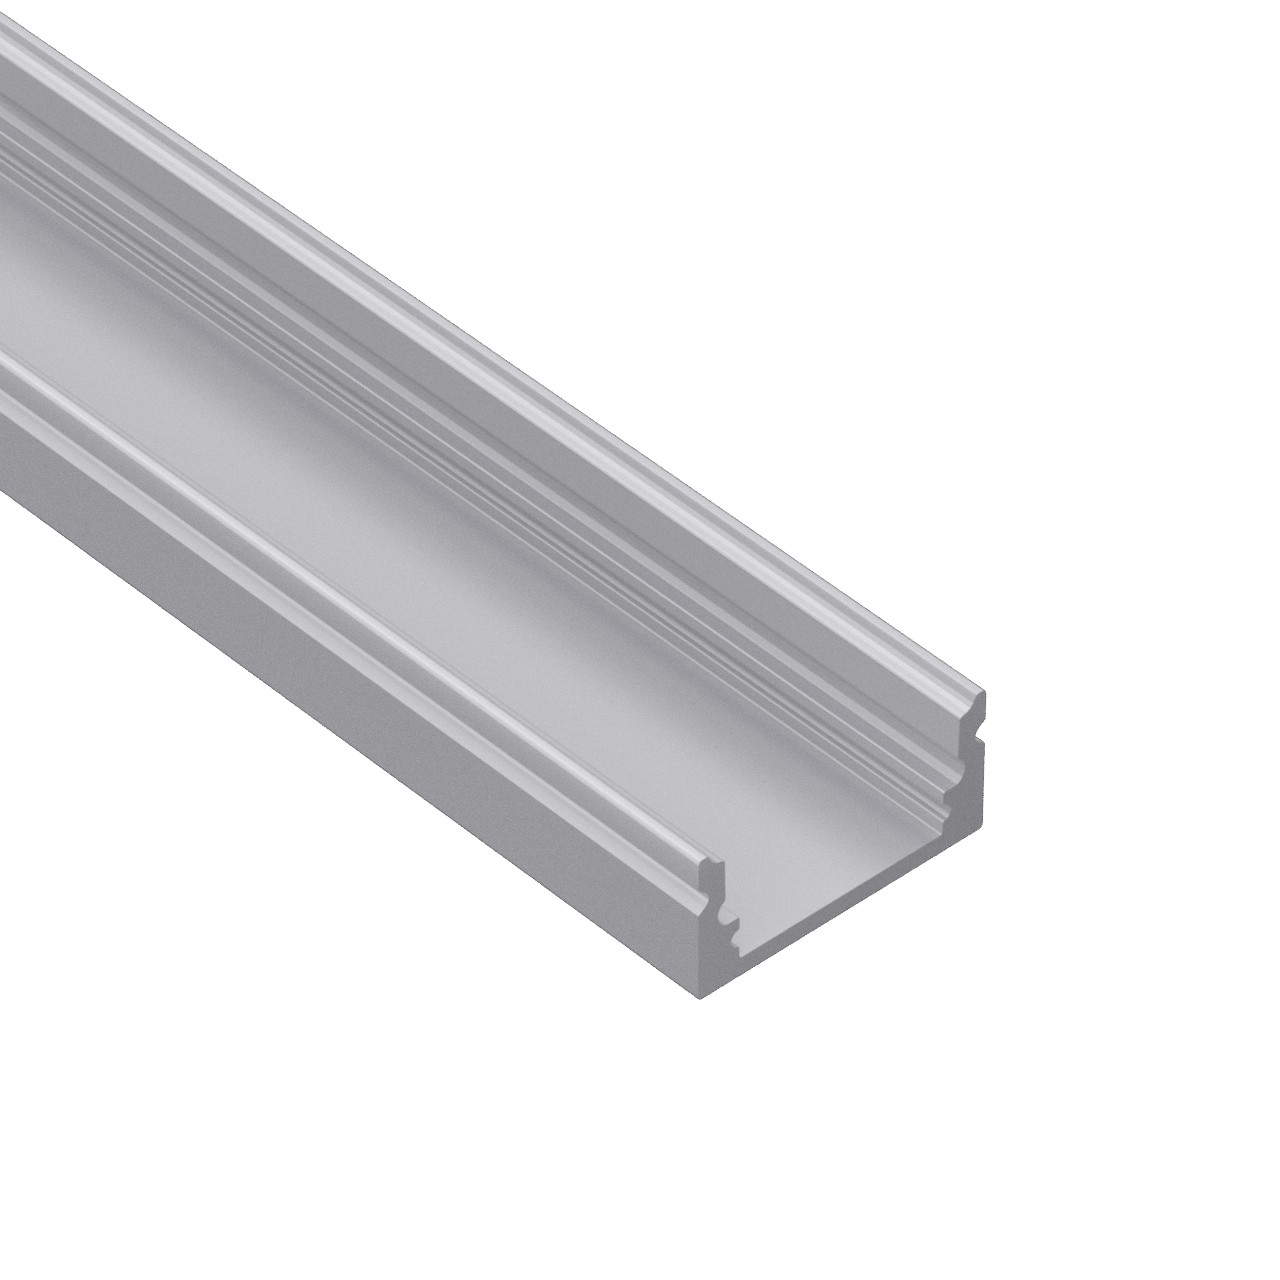 AST1 Dome cover square led profile 17x13.7mm